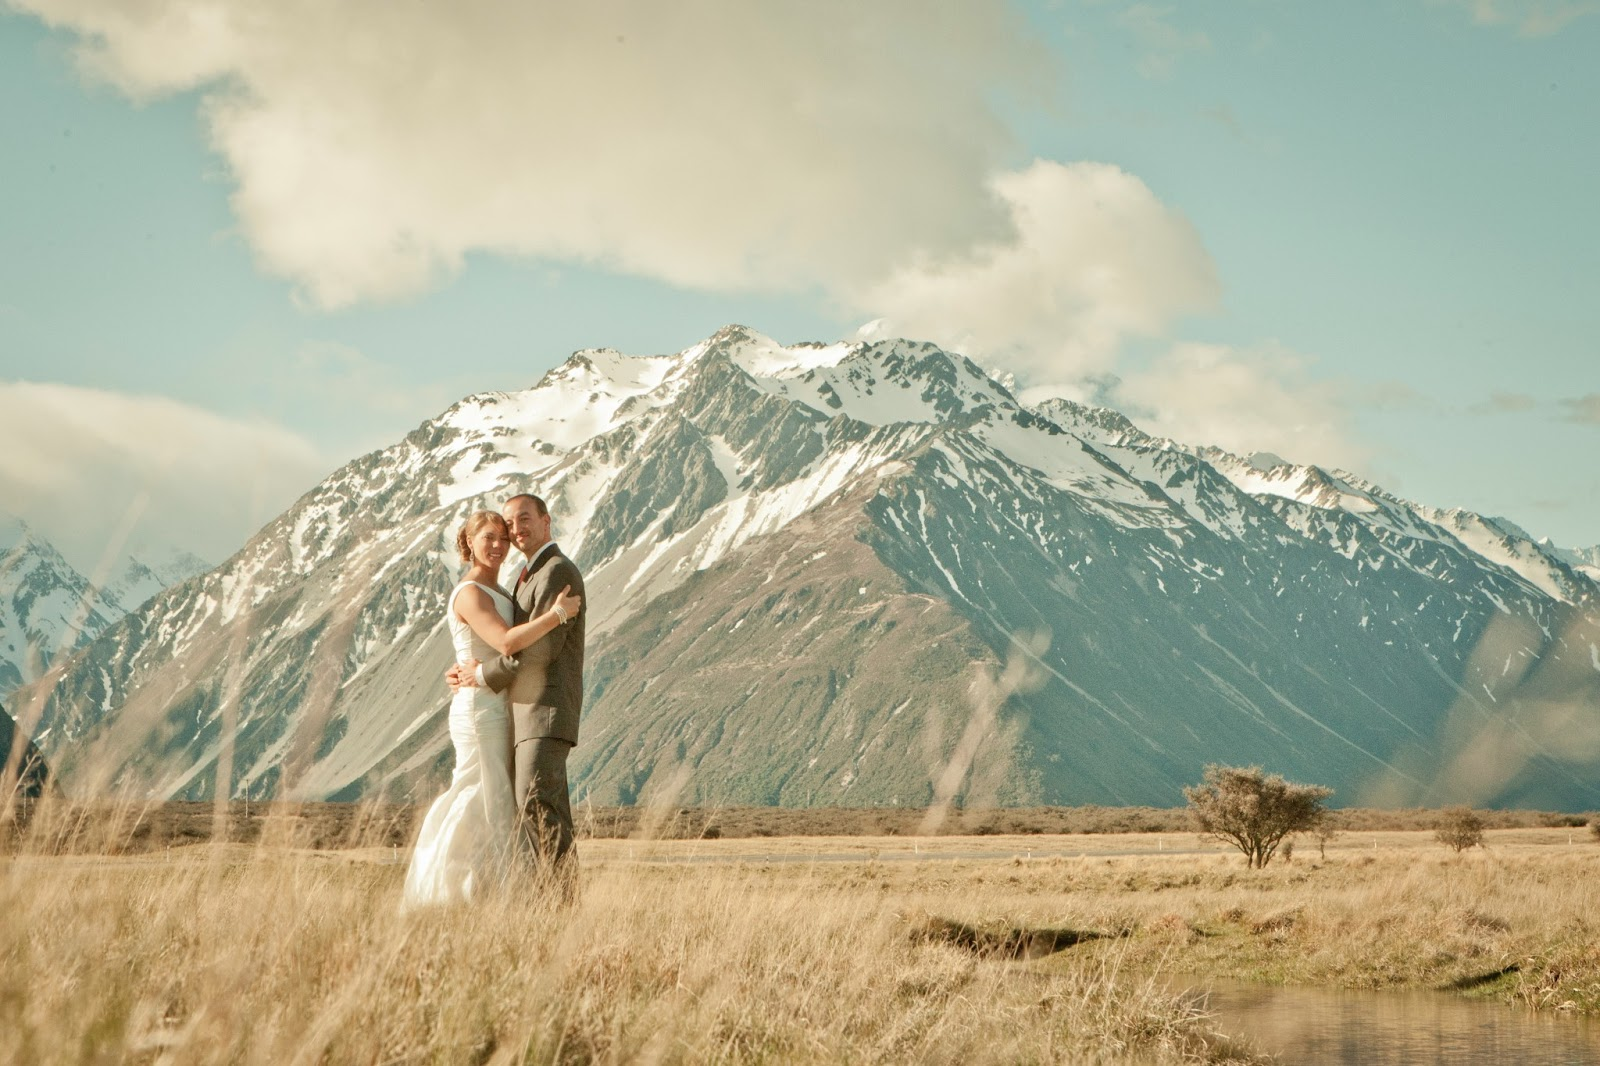 Choosing New Zealand As The Location For Their Destination Wedding Was A No Brainer Richard And Kim Who Had Been There Before Fallen In Love With